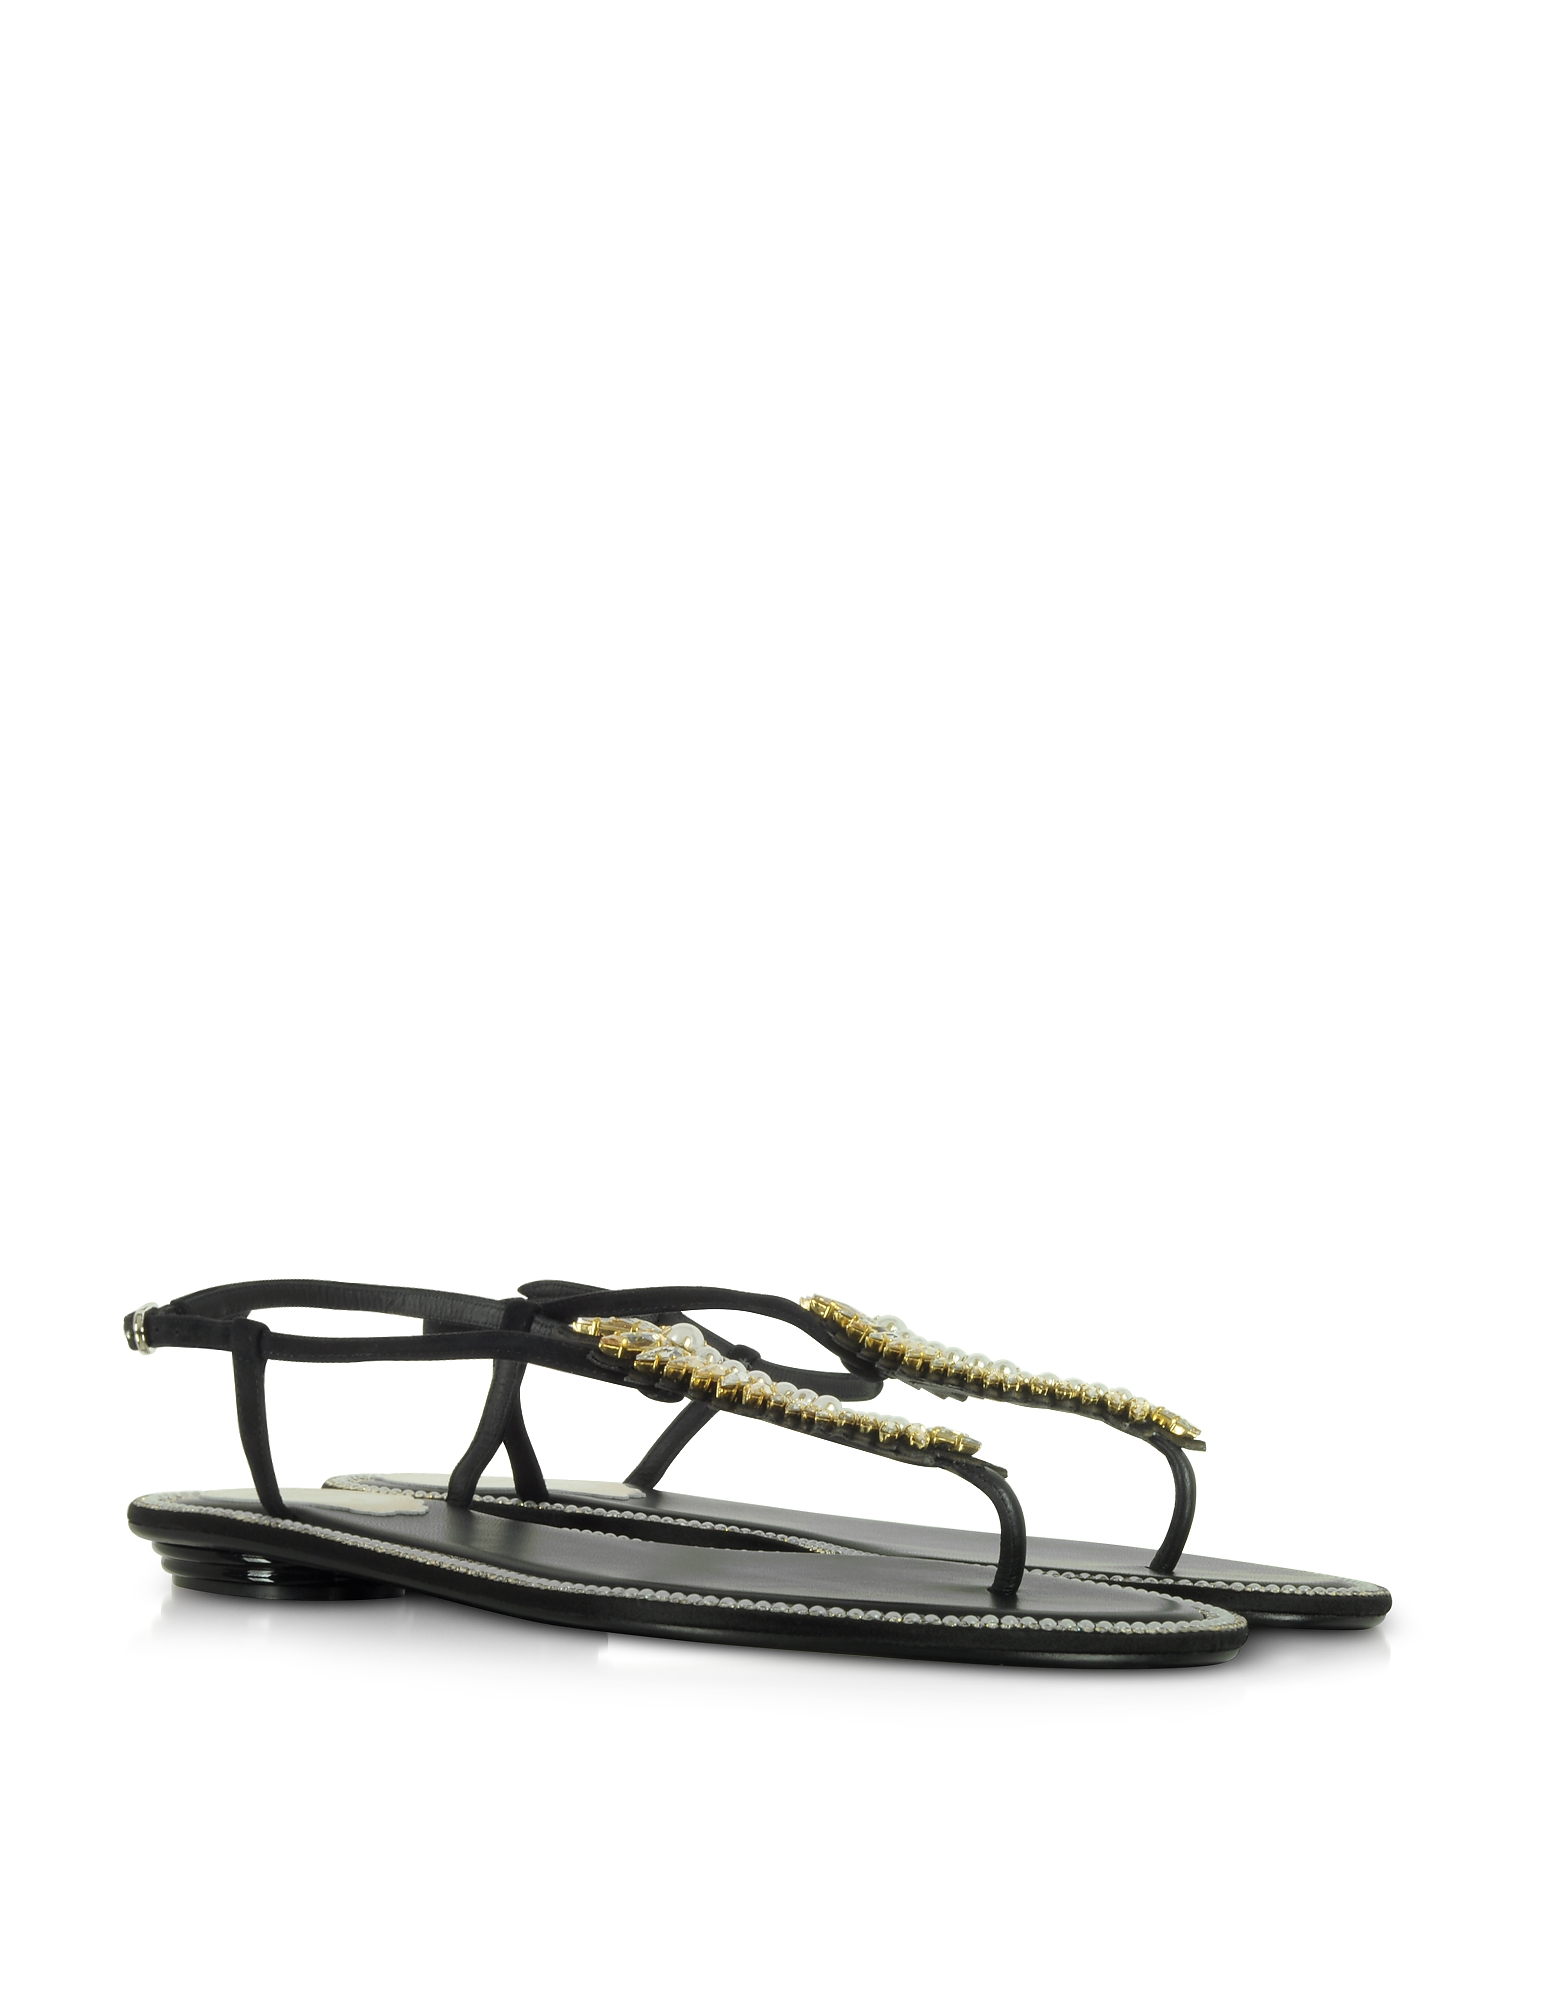 Rene Caovilla Shoes, Black Suede and Crystals Flat Sandals